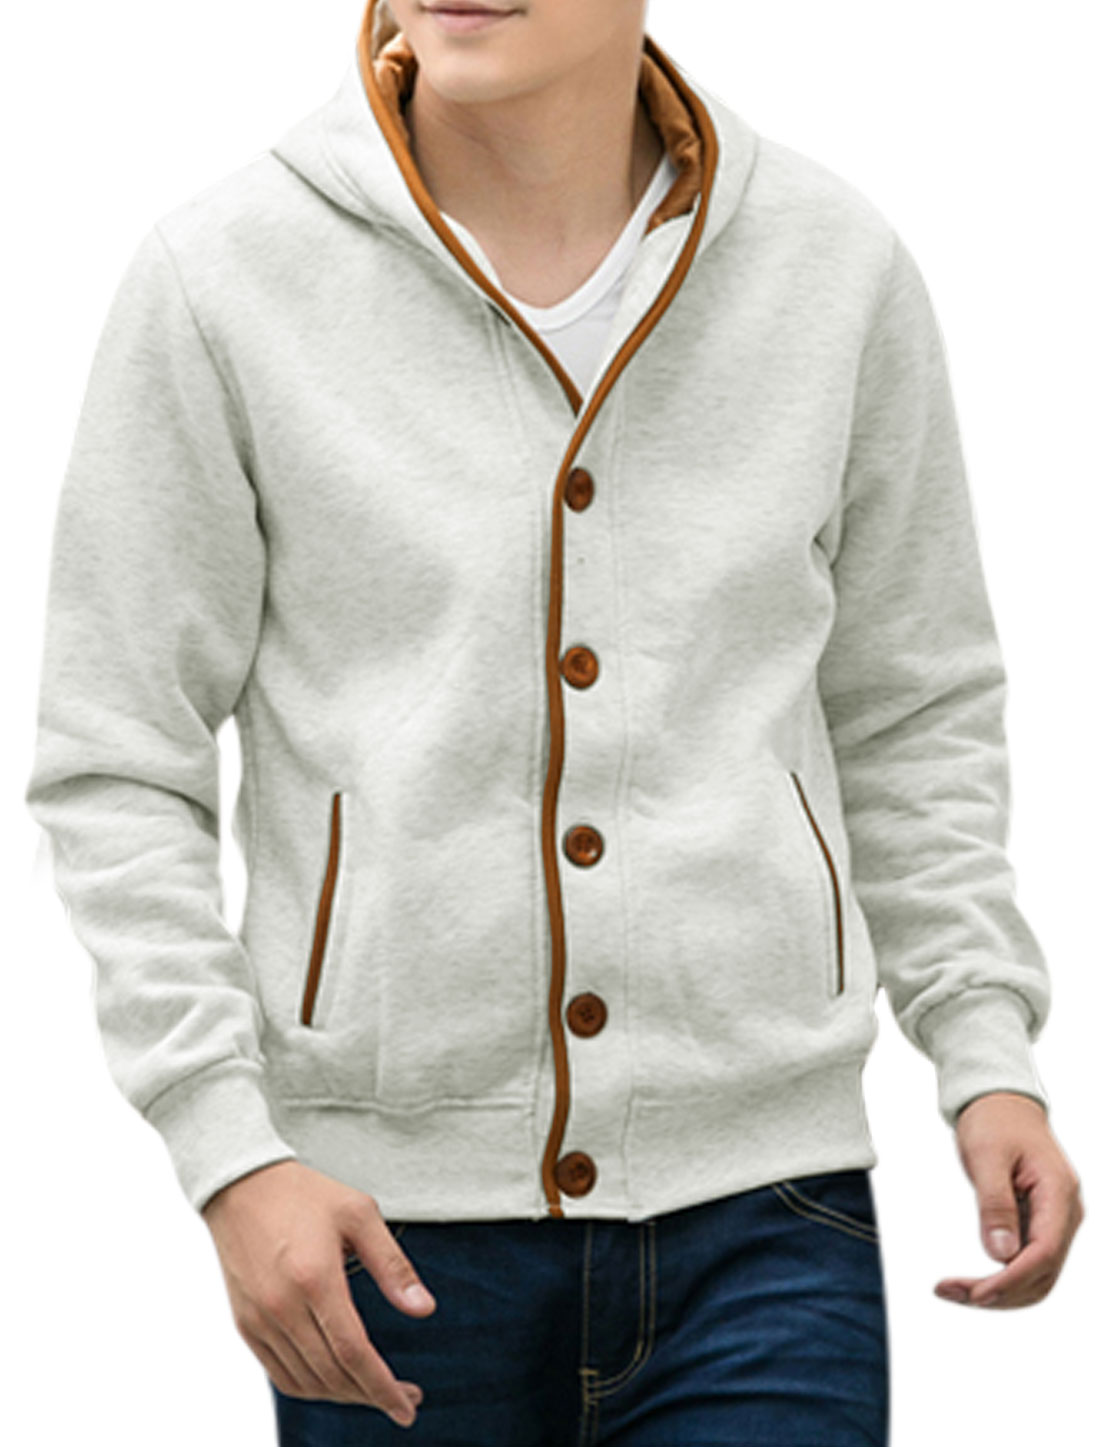 Button Closed Long Sleeves Leisure Light Gray Hooded Jacket for Men M